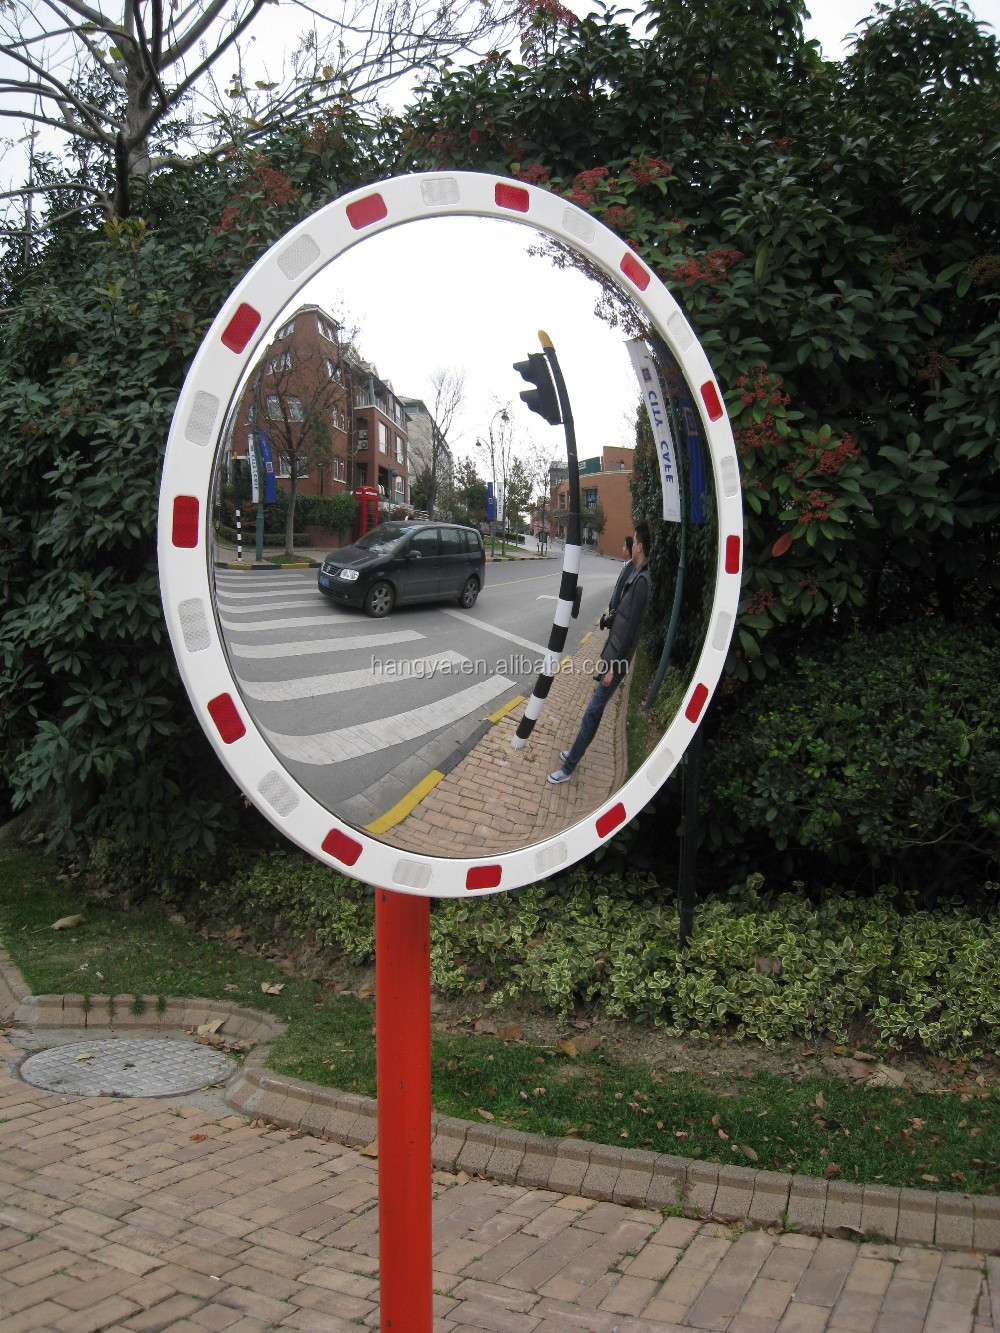 Large Concave Reflective Traffic Safety Convex Mirror